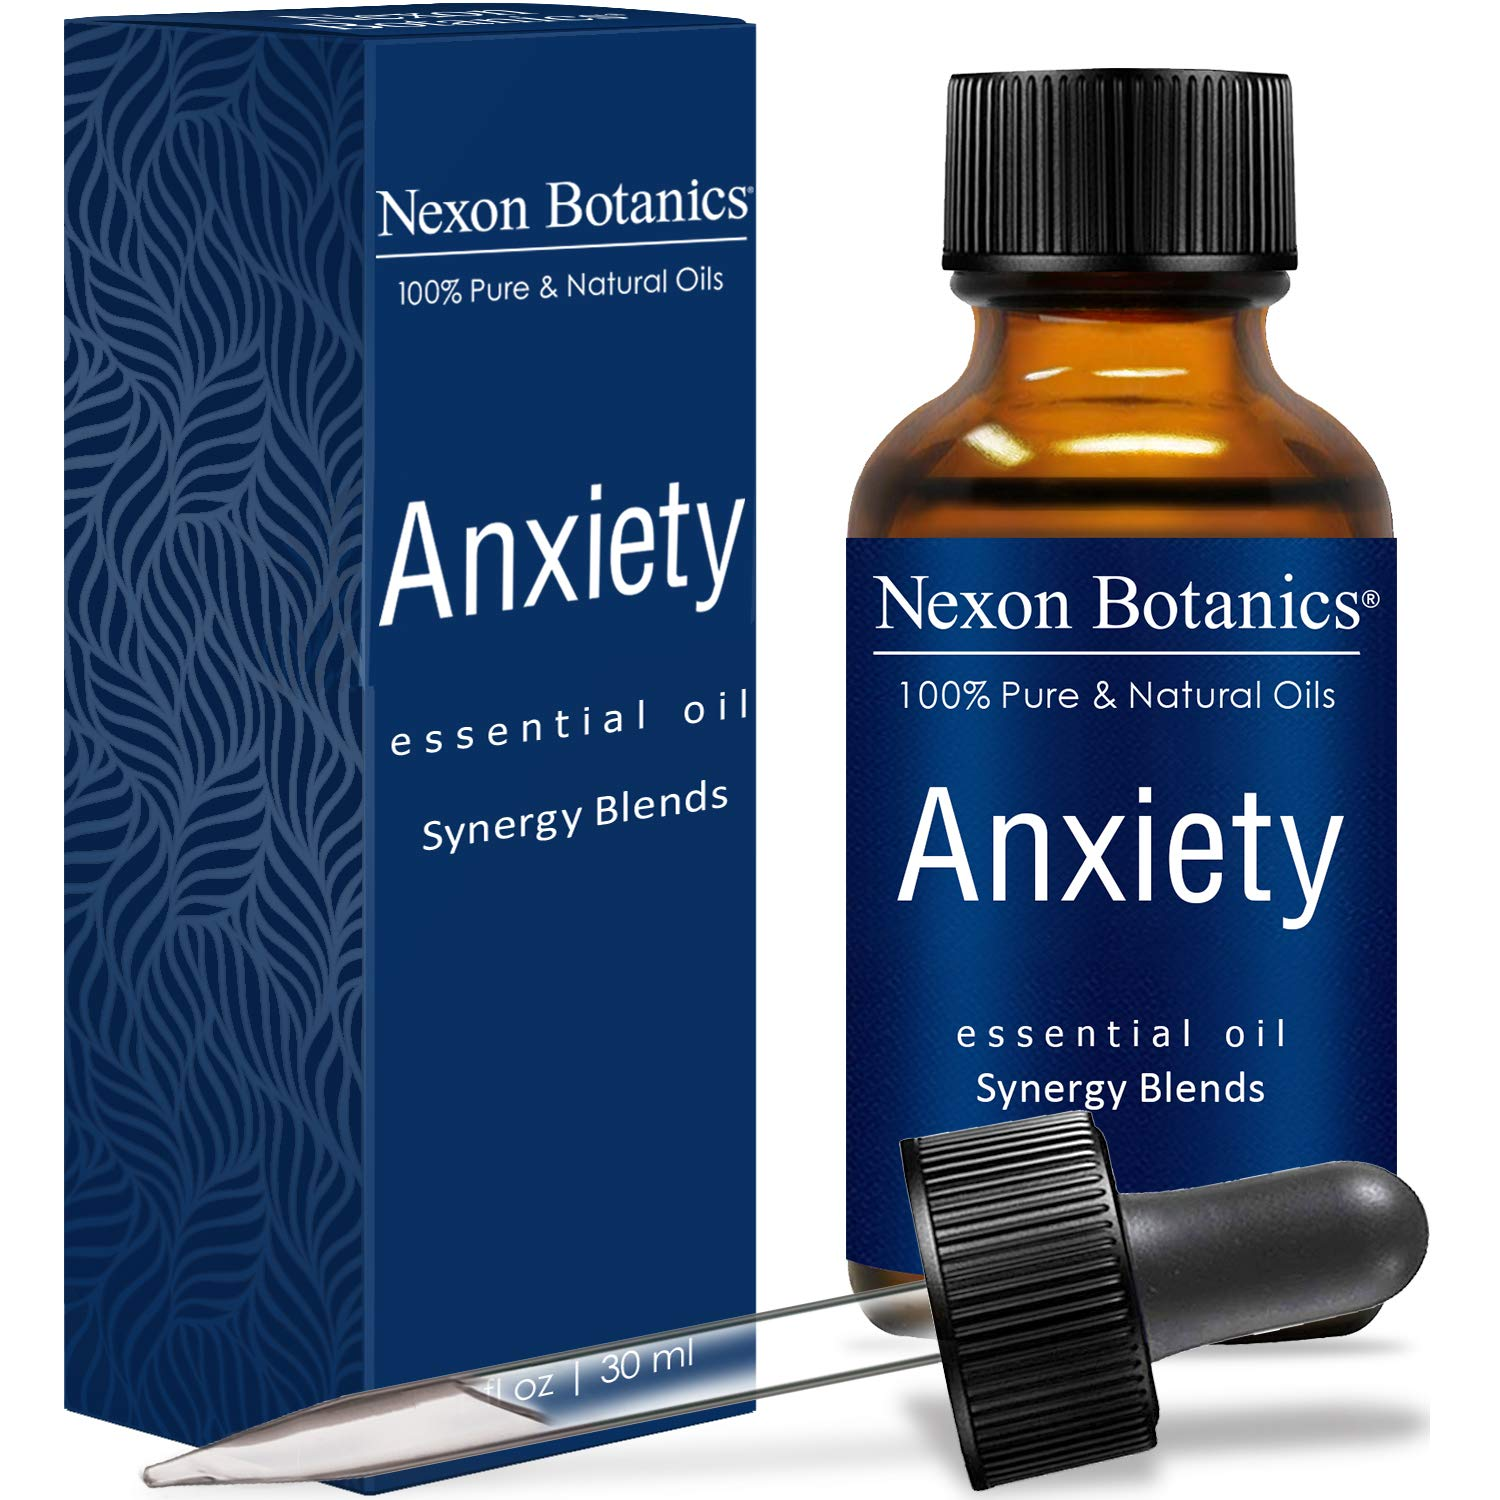 NEXON BOTANICS Anxiety Relief Essential Oil Synergy Blend 30ml - Helps Stress Away, Anti Depression - Promotes Relaxation, Calming - Can be Used for Aromatherapy or Diffuser